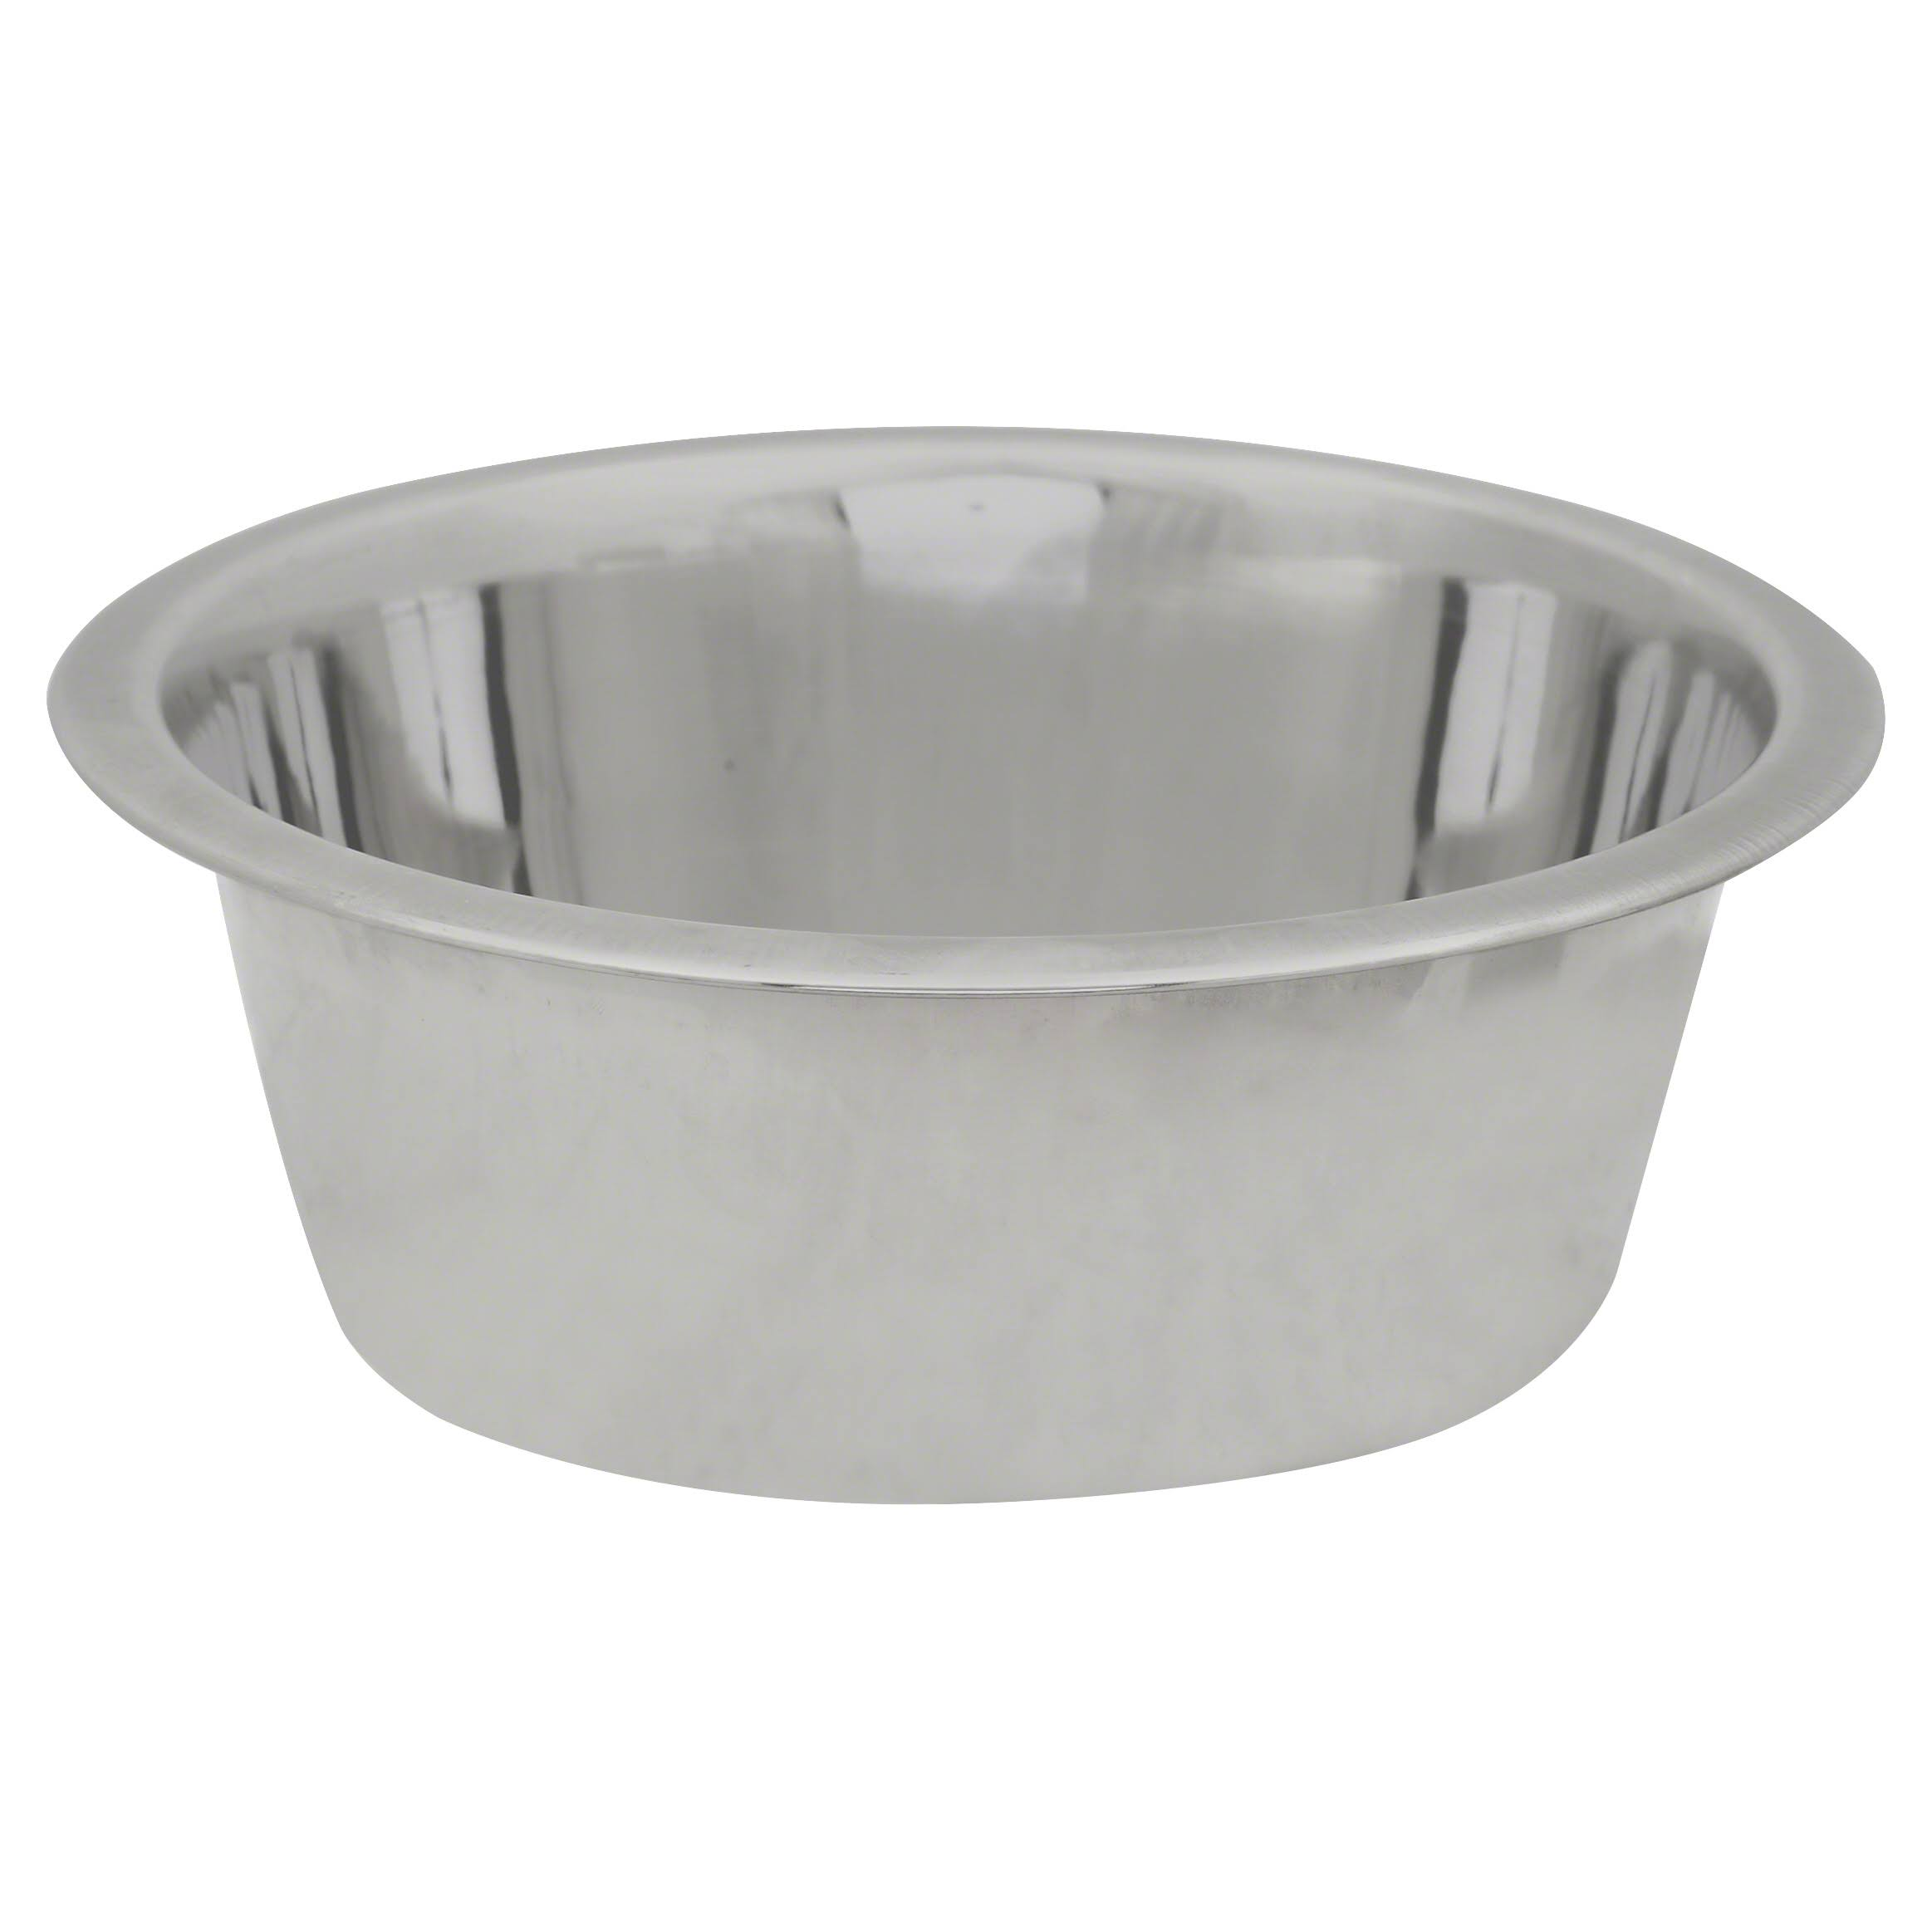 Ethical Pet Spot Pet Bowl - Stainless Mirror Finish